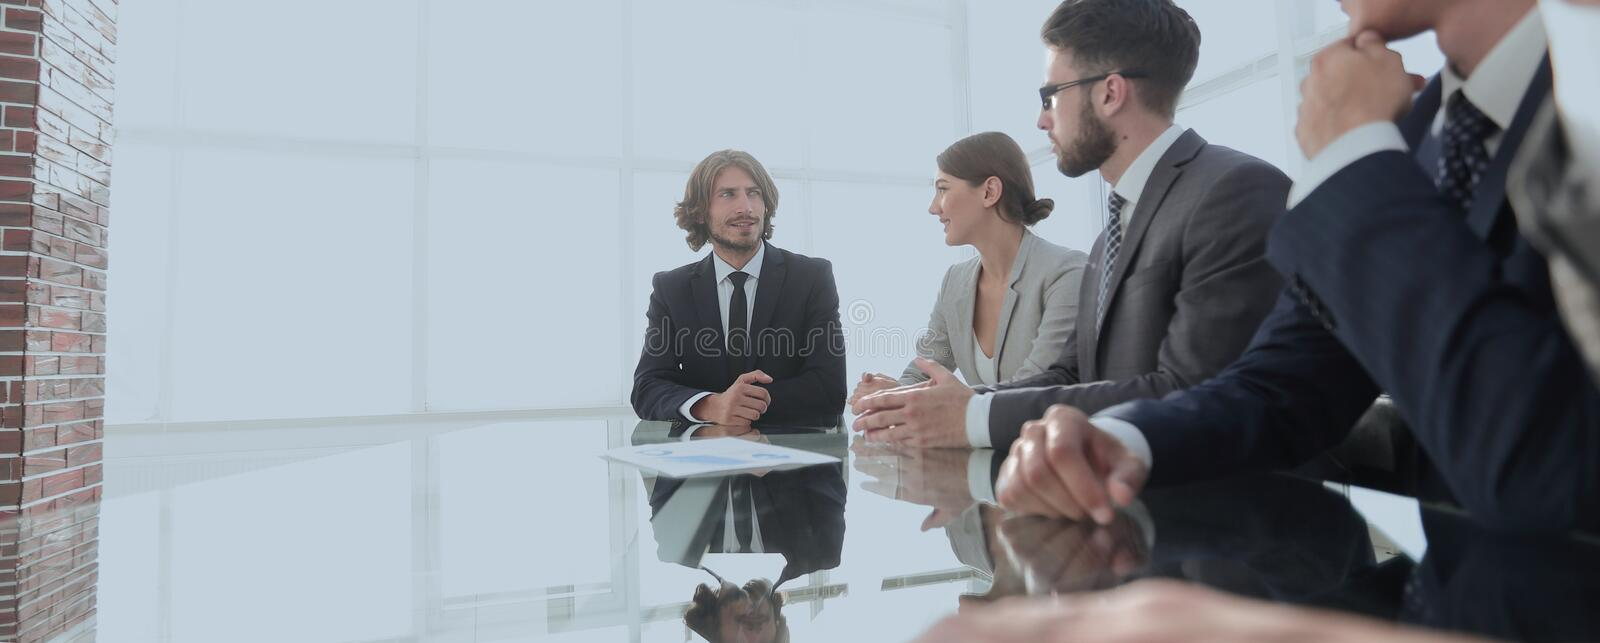 Meeting of business people. To discuss the corporate concept.photo with copy space royalty free stock photography